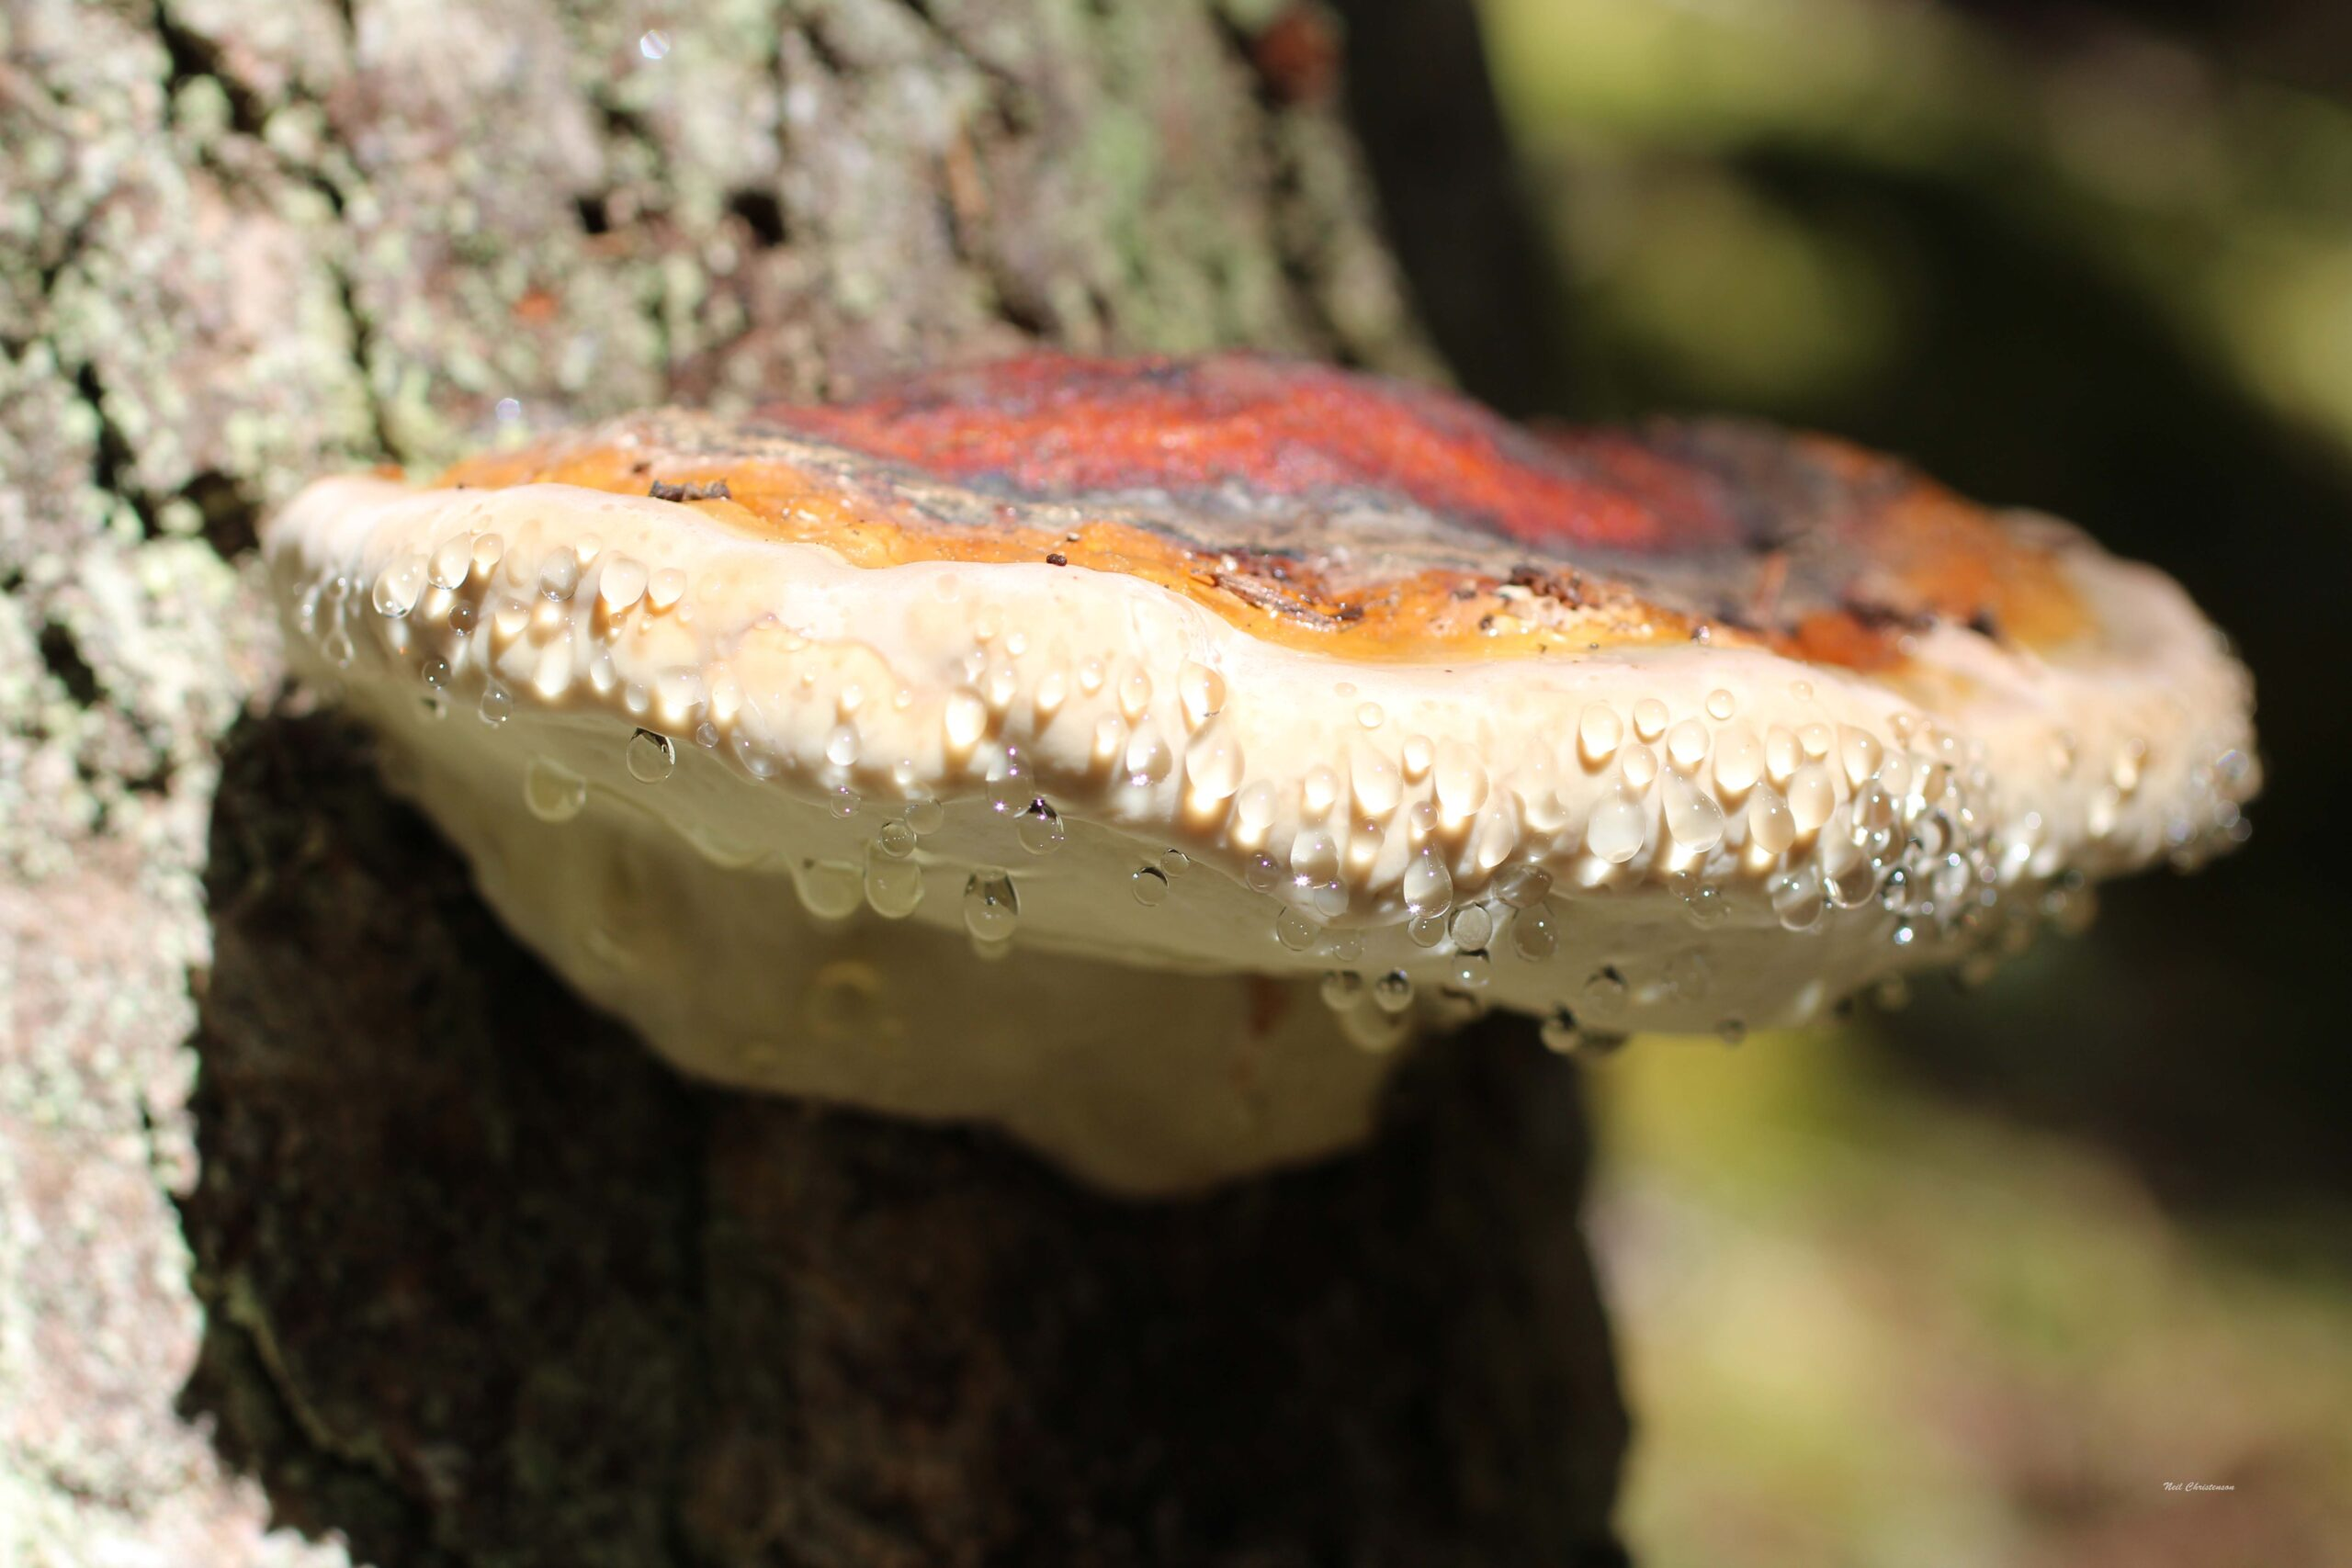 A dew-covered mushroom growing on a tree.